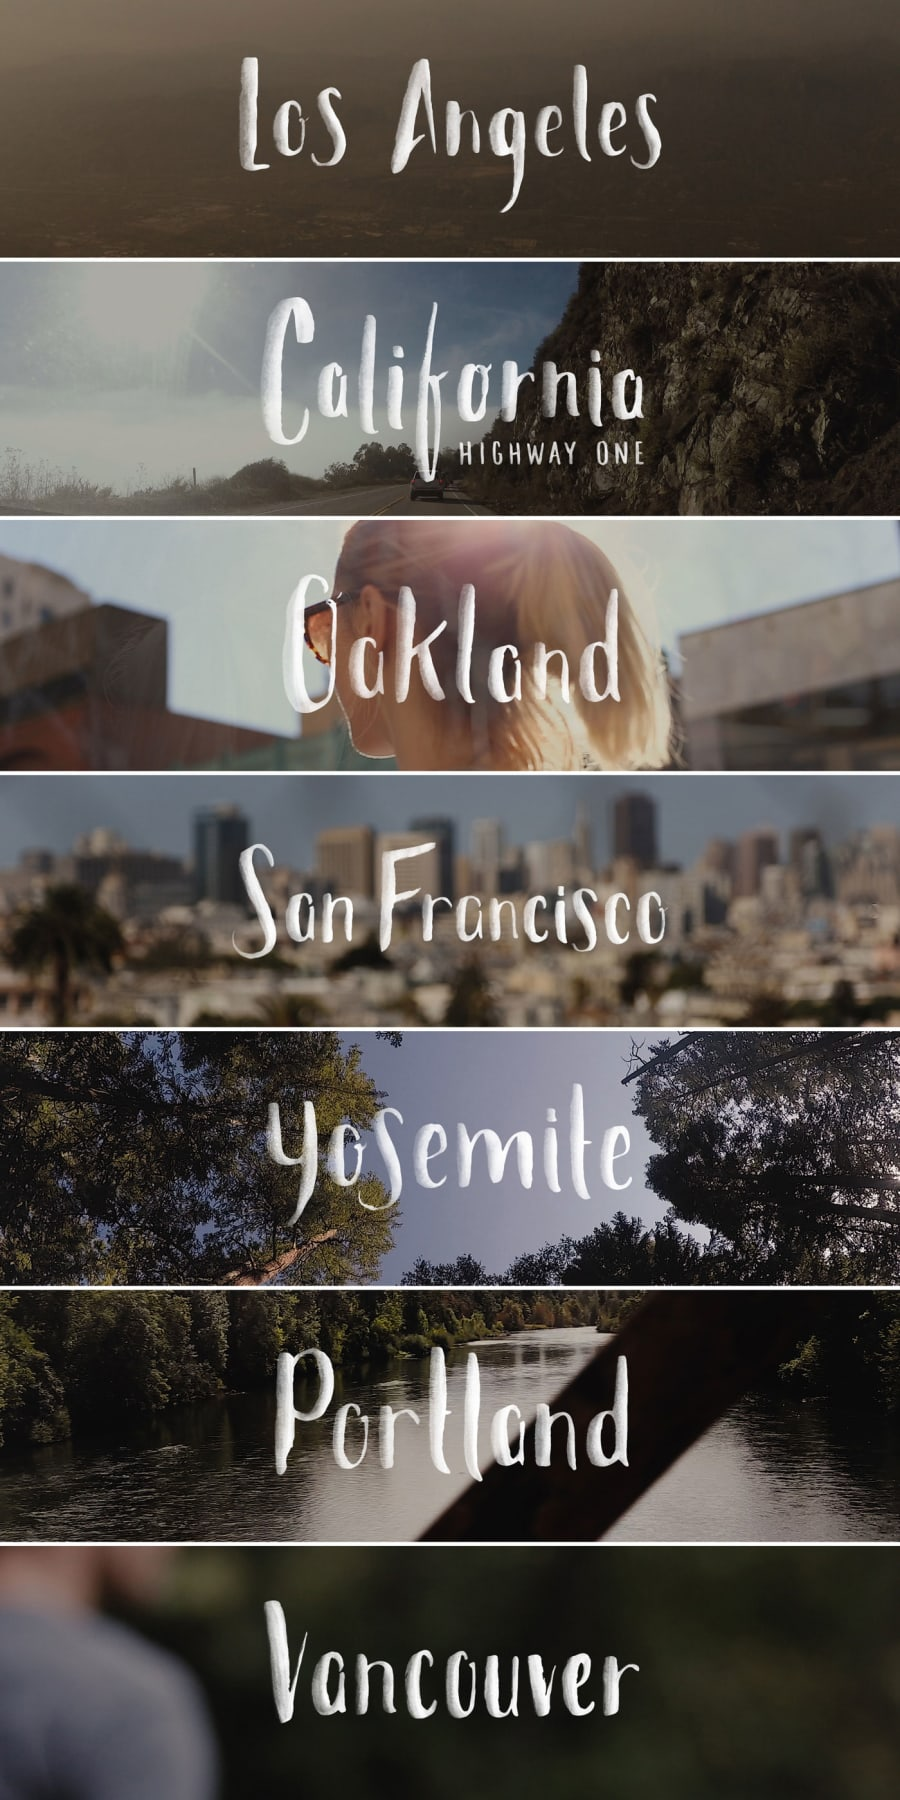 hand-drawn brush lettering of Los Angeles, Oakland, San Francisco, Yosemite, Portland, and Vancouver